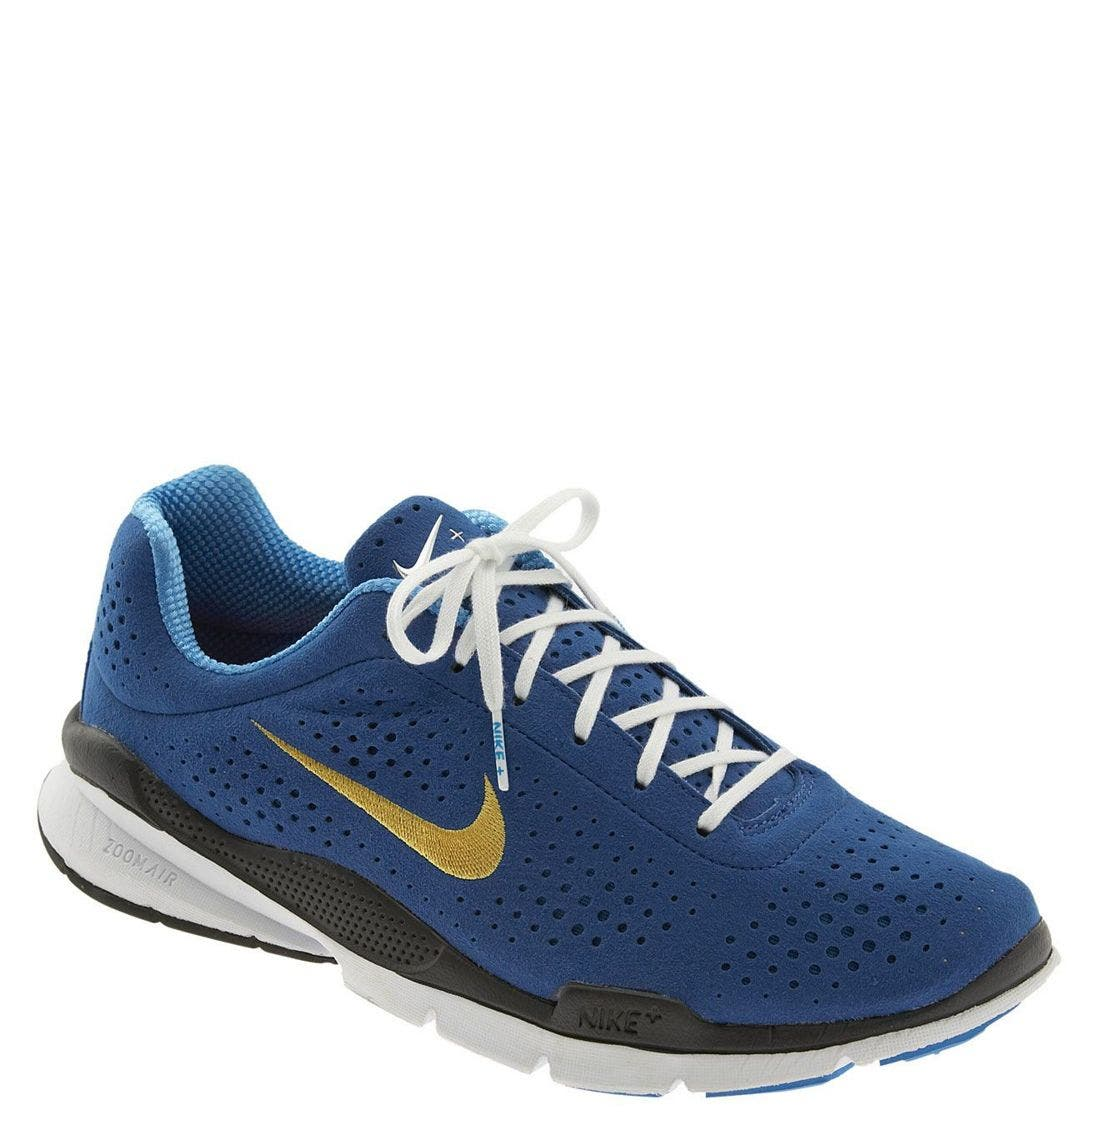 NIKE  'Air Zoom Moire' Athletic Shoe, Main, color, ASF